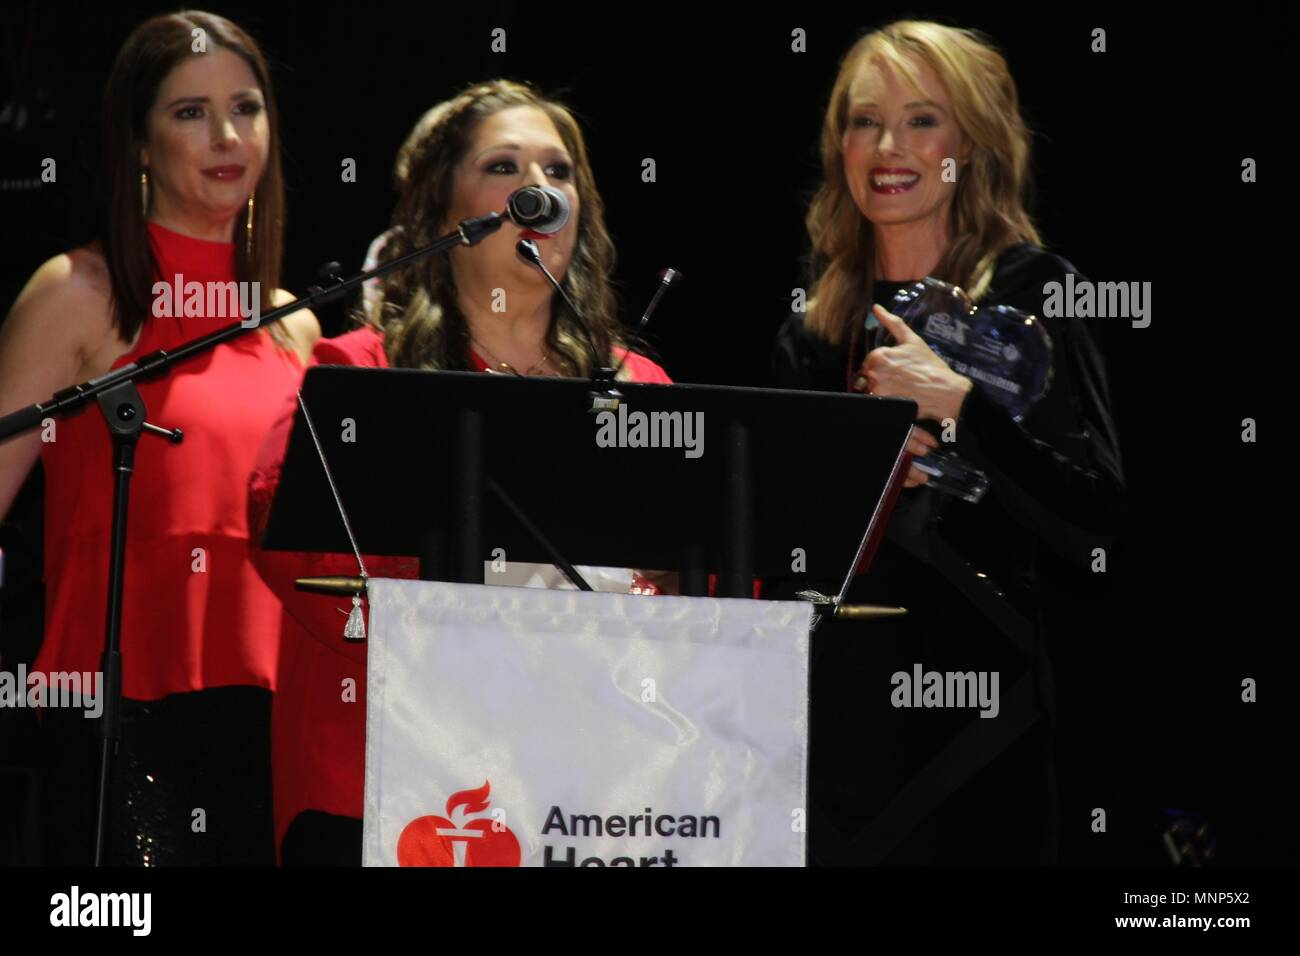 Hollywood, California, USA. 17th May, 2018. I15986CHW.The American Heart Association Presents The 3rd Annual ROCK THE RED Music Benefit .Avalon Hollywood, Los Angeles, CA USA.05/17/2018.WENDY WILSON, CARNIE WILSON AND CHYNNA PHILLIPS . © Clinton H.Wallace/Photomundo International/ Photos Inc Credit: Clinton Wallace/Globe Photos/ZUMA Wire/Alamy Live News - Stock Image